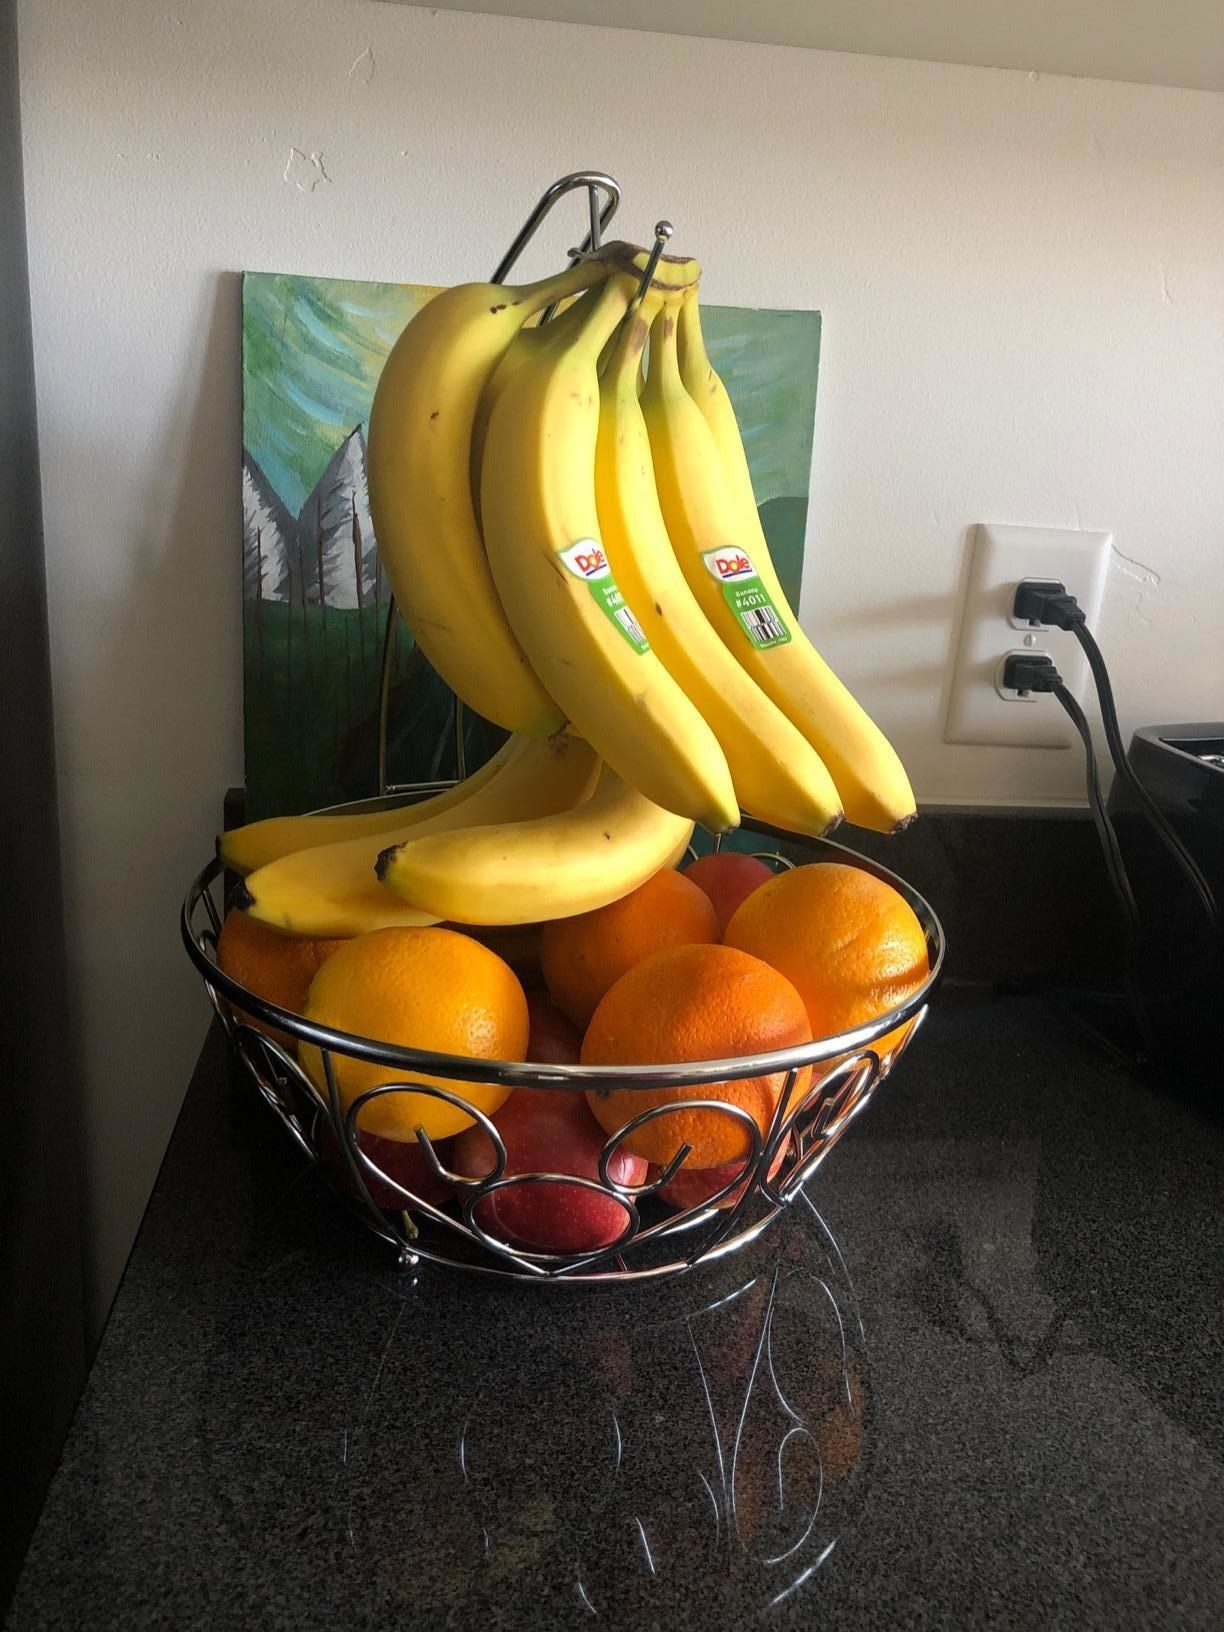 A chrome finish fruit basket filled with oranges and apples with bananas hanging  above